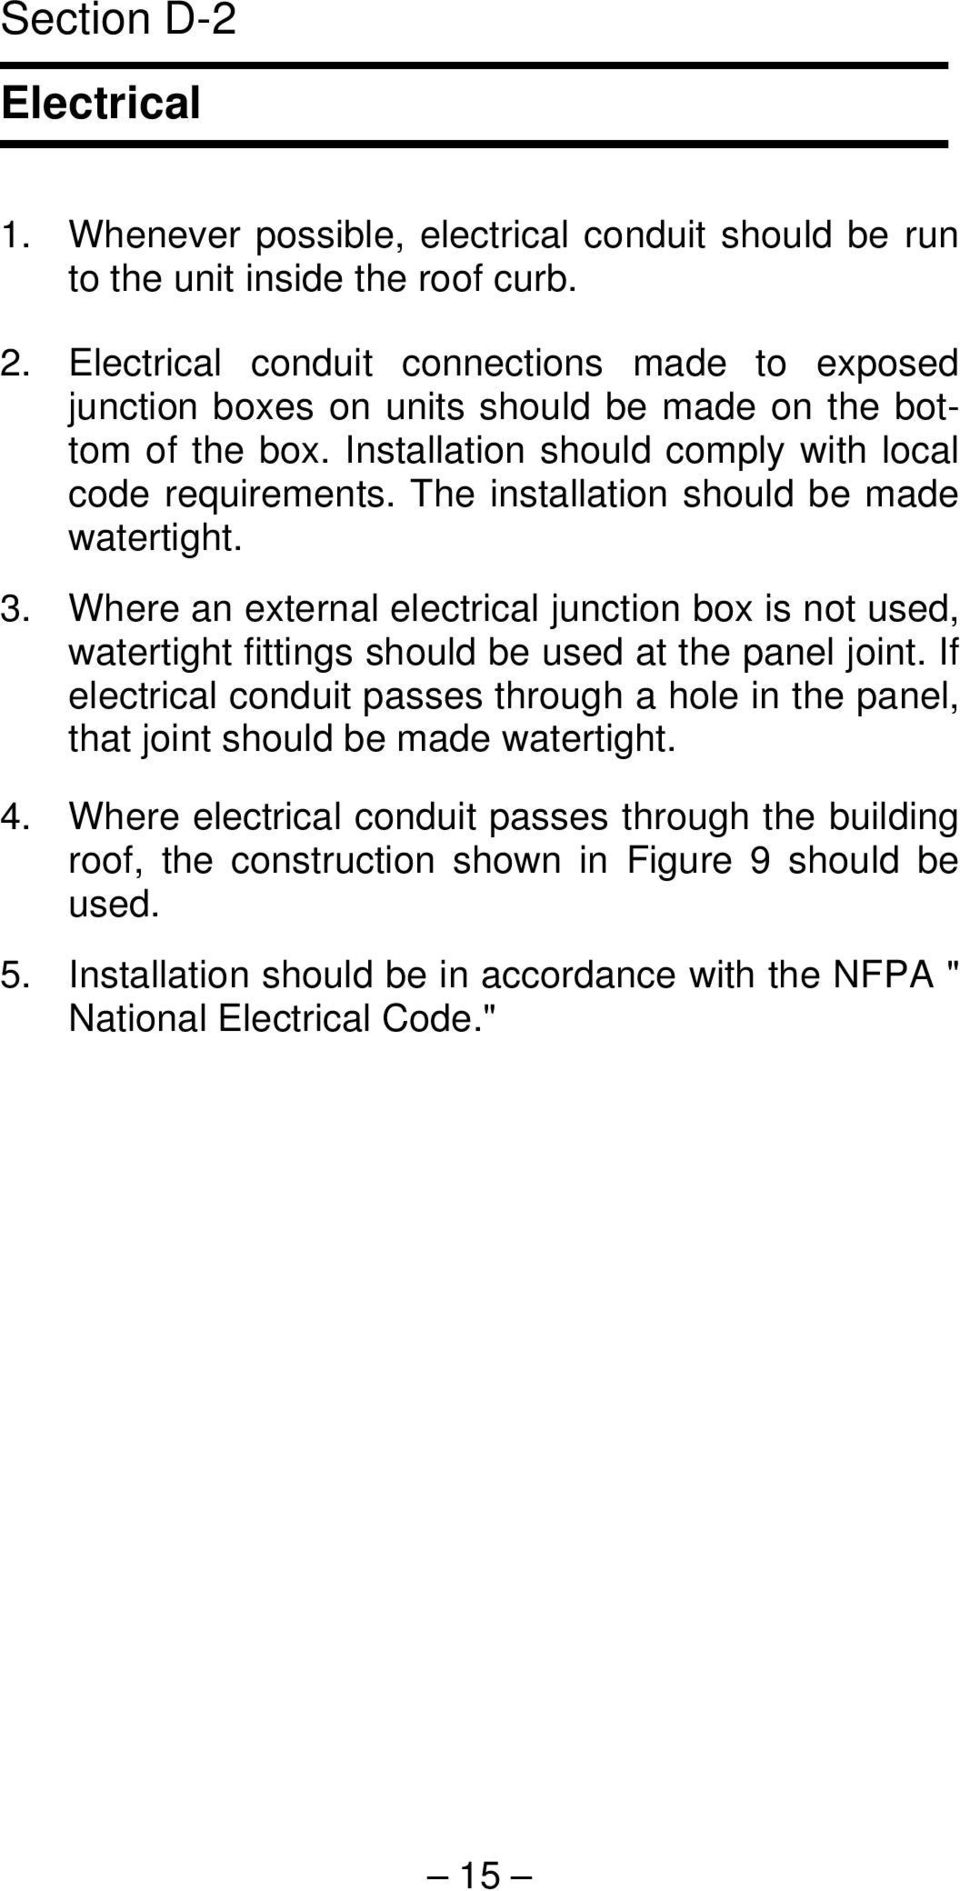 The installation should be made watertight. 3. Where an external electrical junction box is not used, watertight fittings should be used at the panel joint.